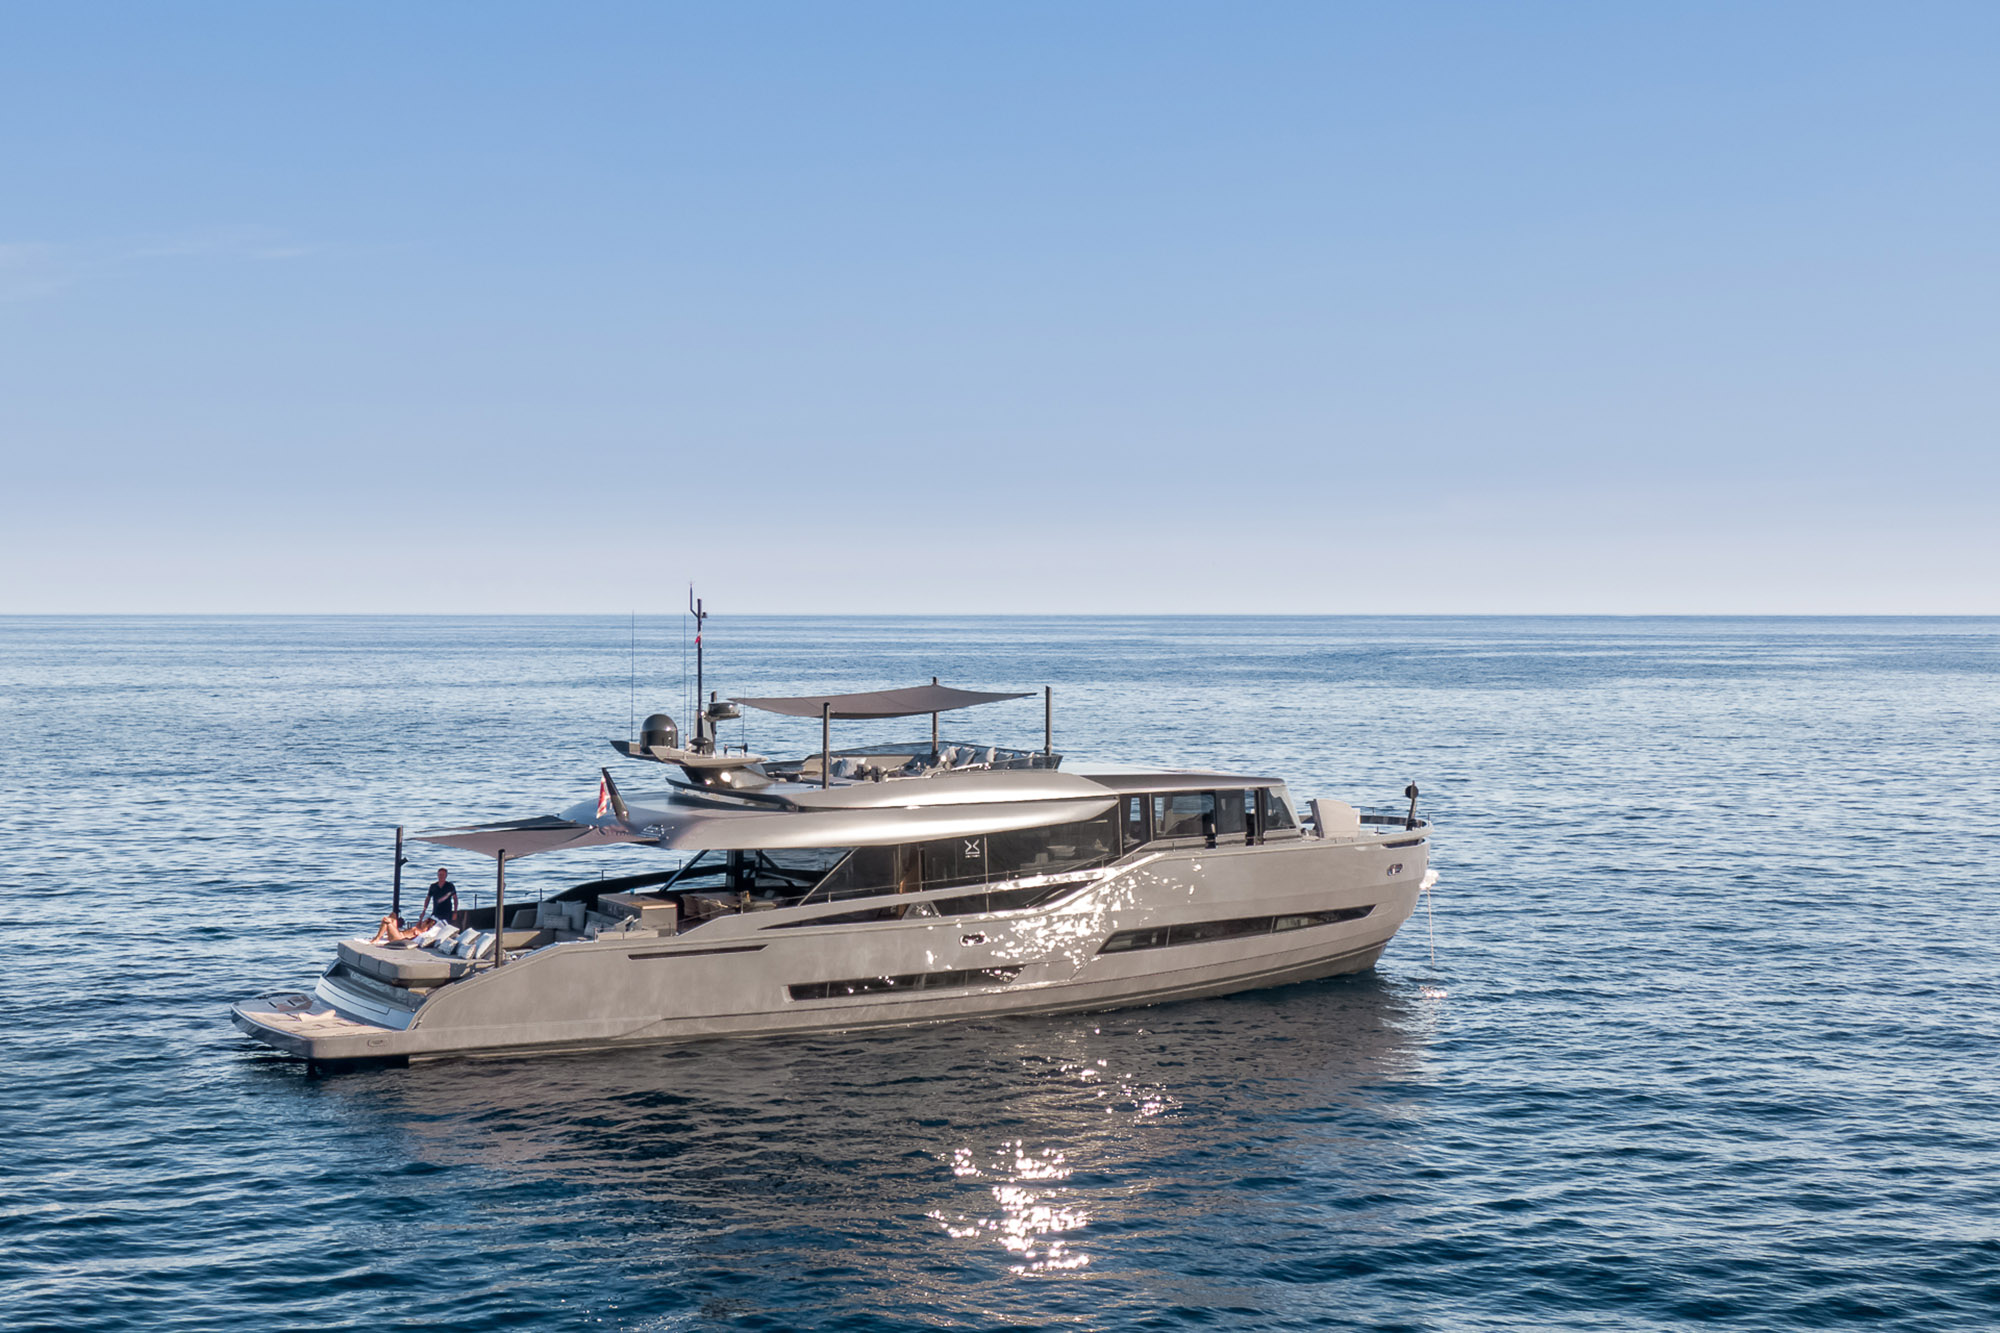 EXTRA 86 yachts for sale